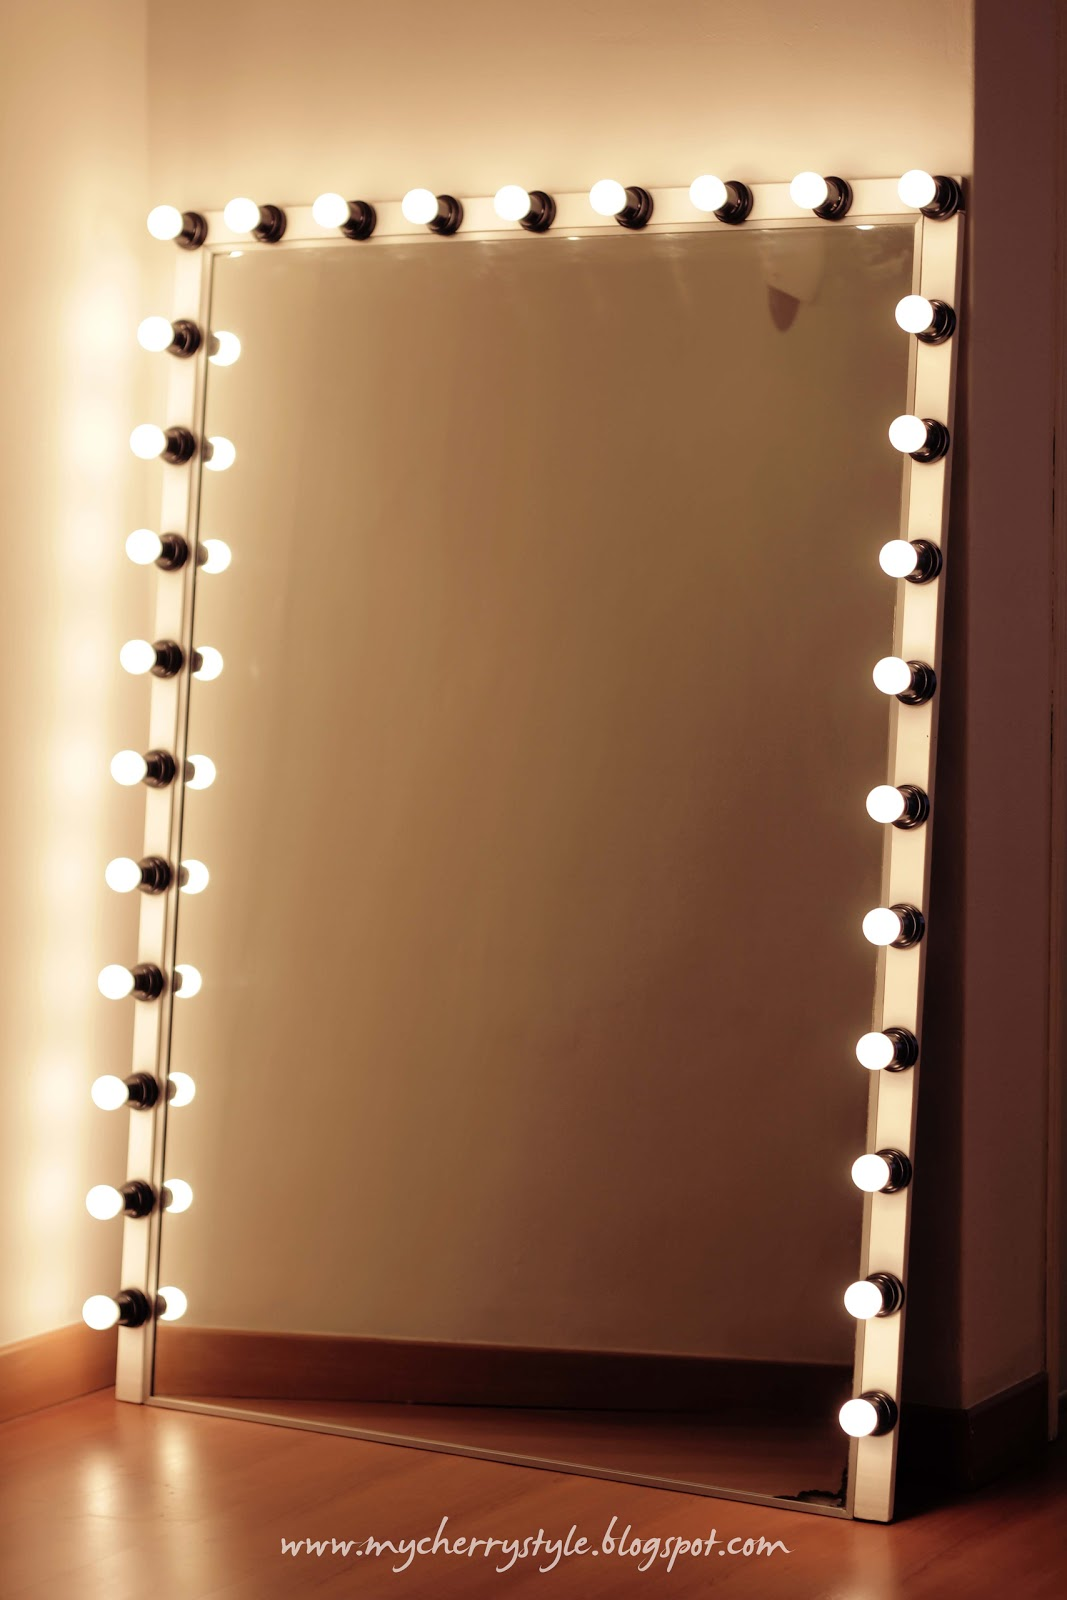 Diy Hollywood Style Mirror With Lights Tutorial From Scratch For Real My Cherry